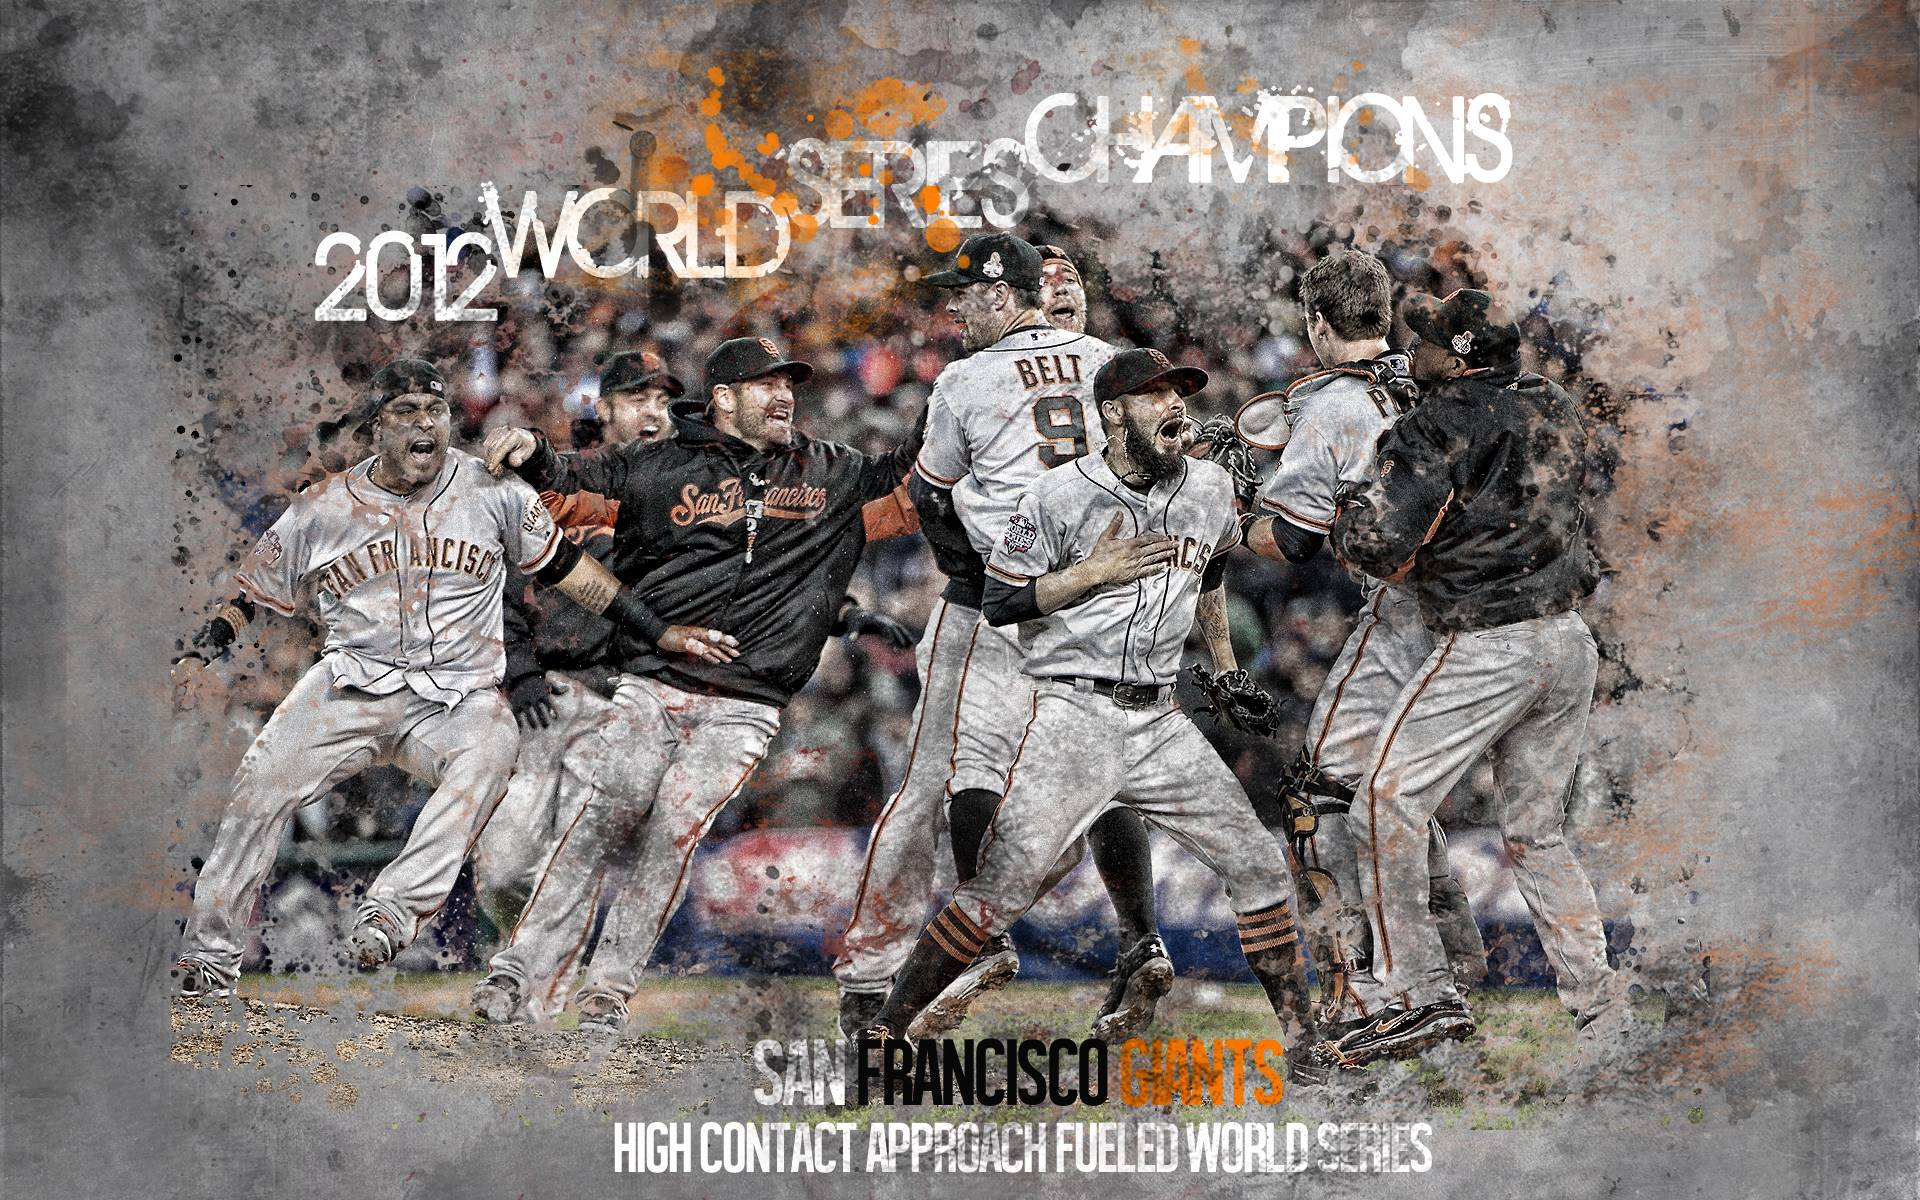 SanFrancisco Giants 2012WorldSeriesChampions By 31ANDONLY On